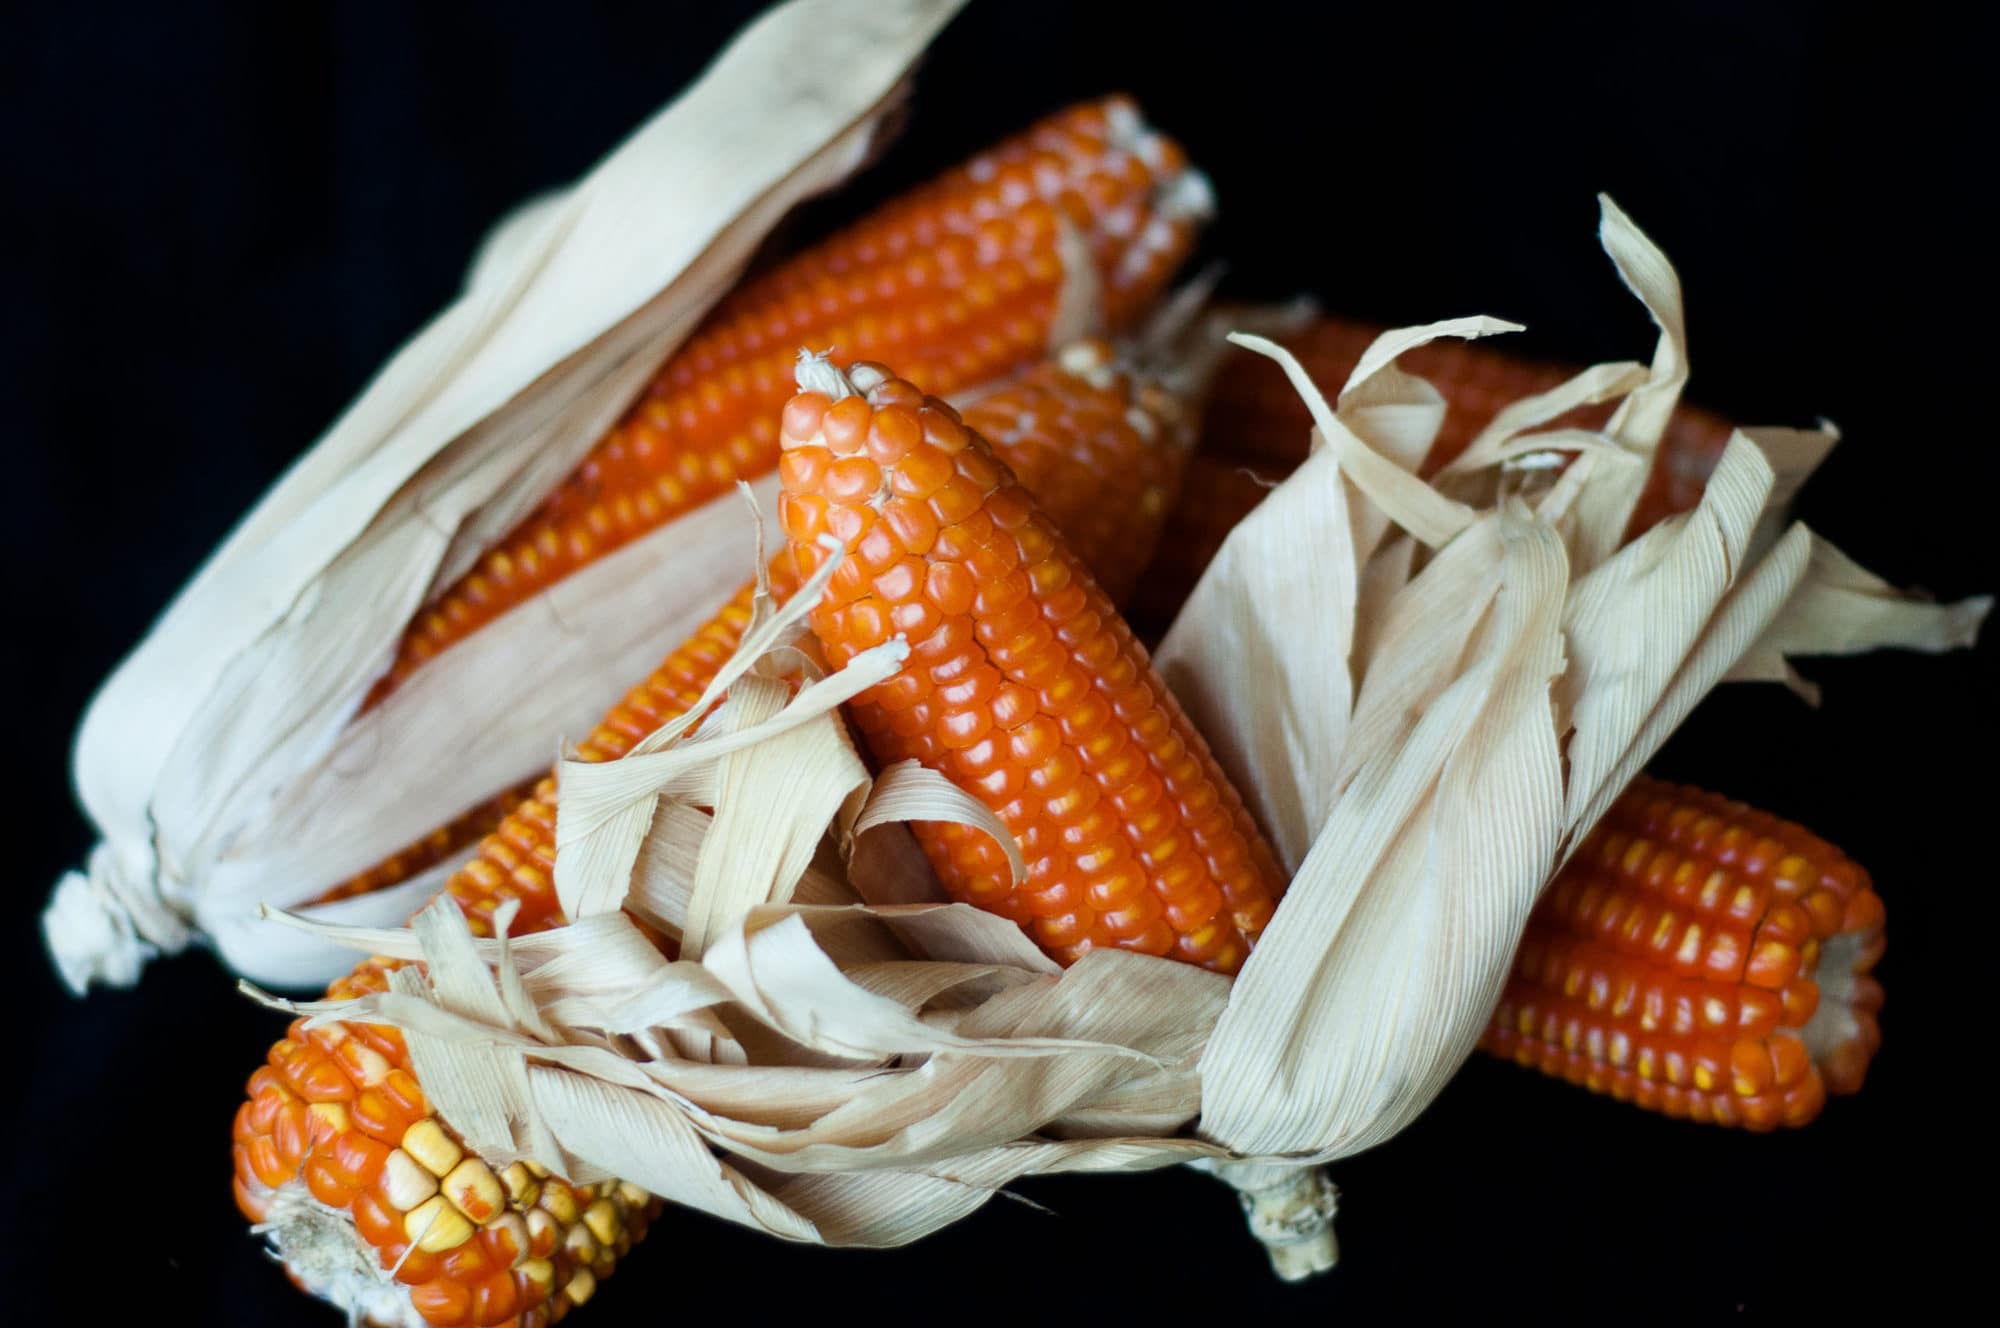 Crops bred to improve nutrition